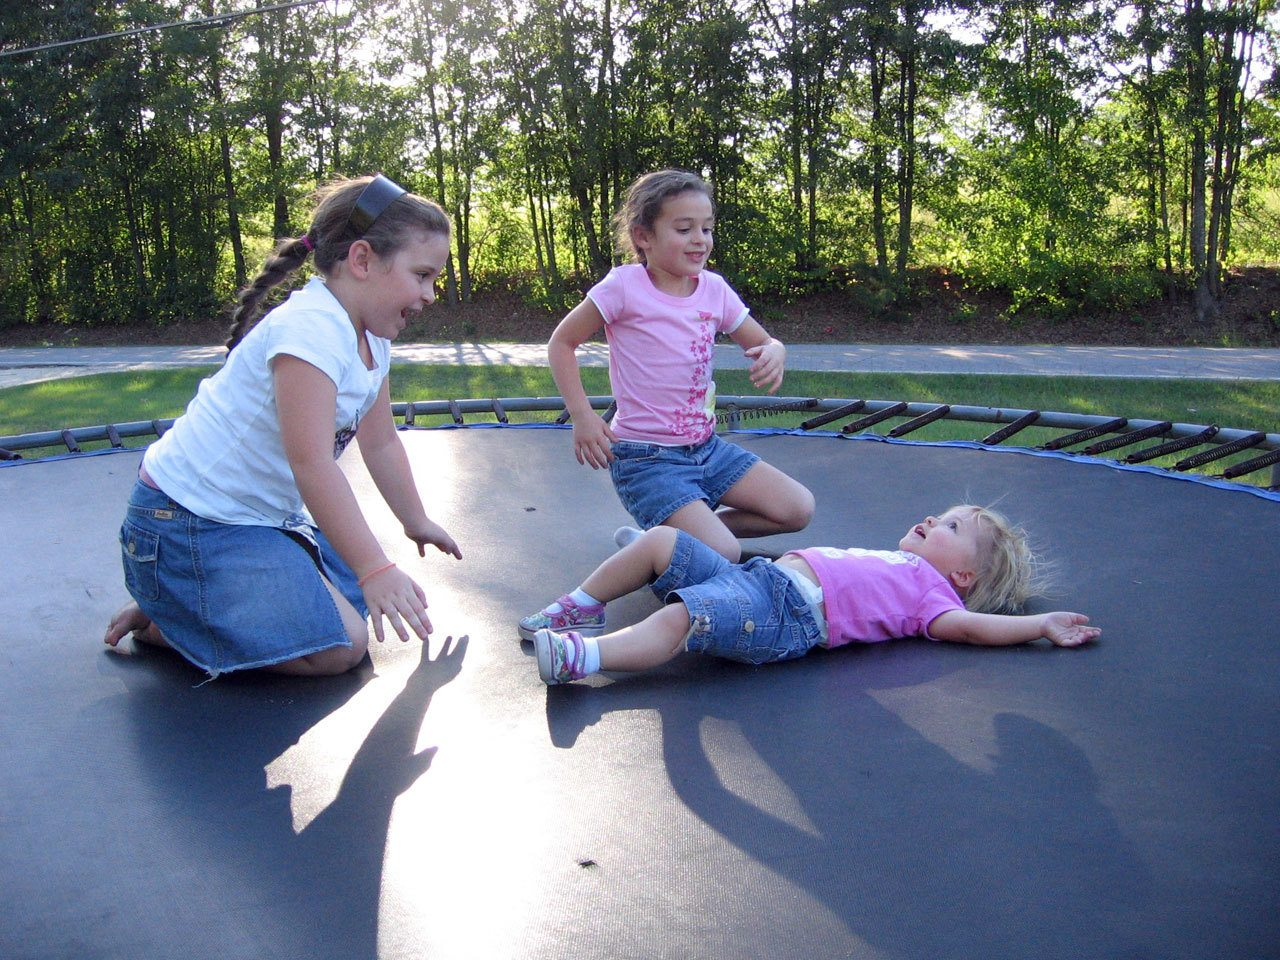 kids are playing on bounce pro trampoline